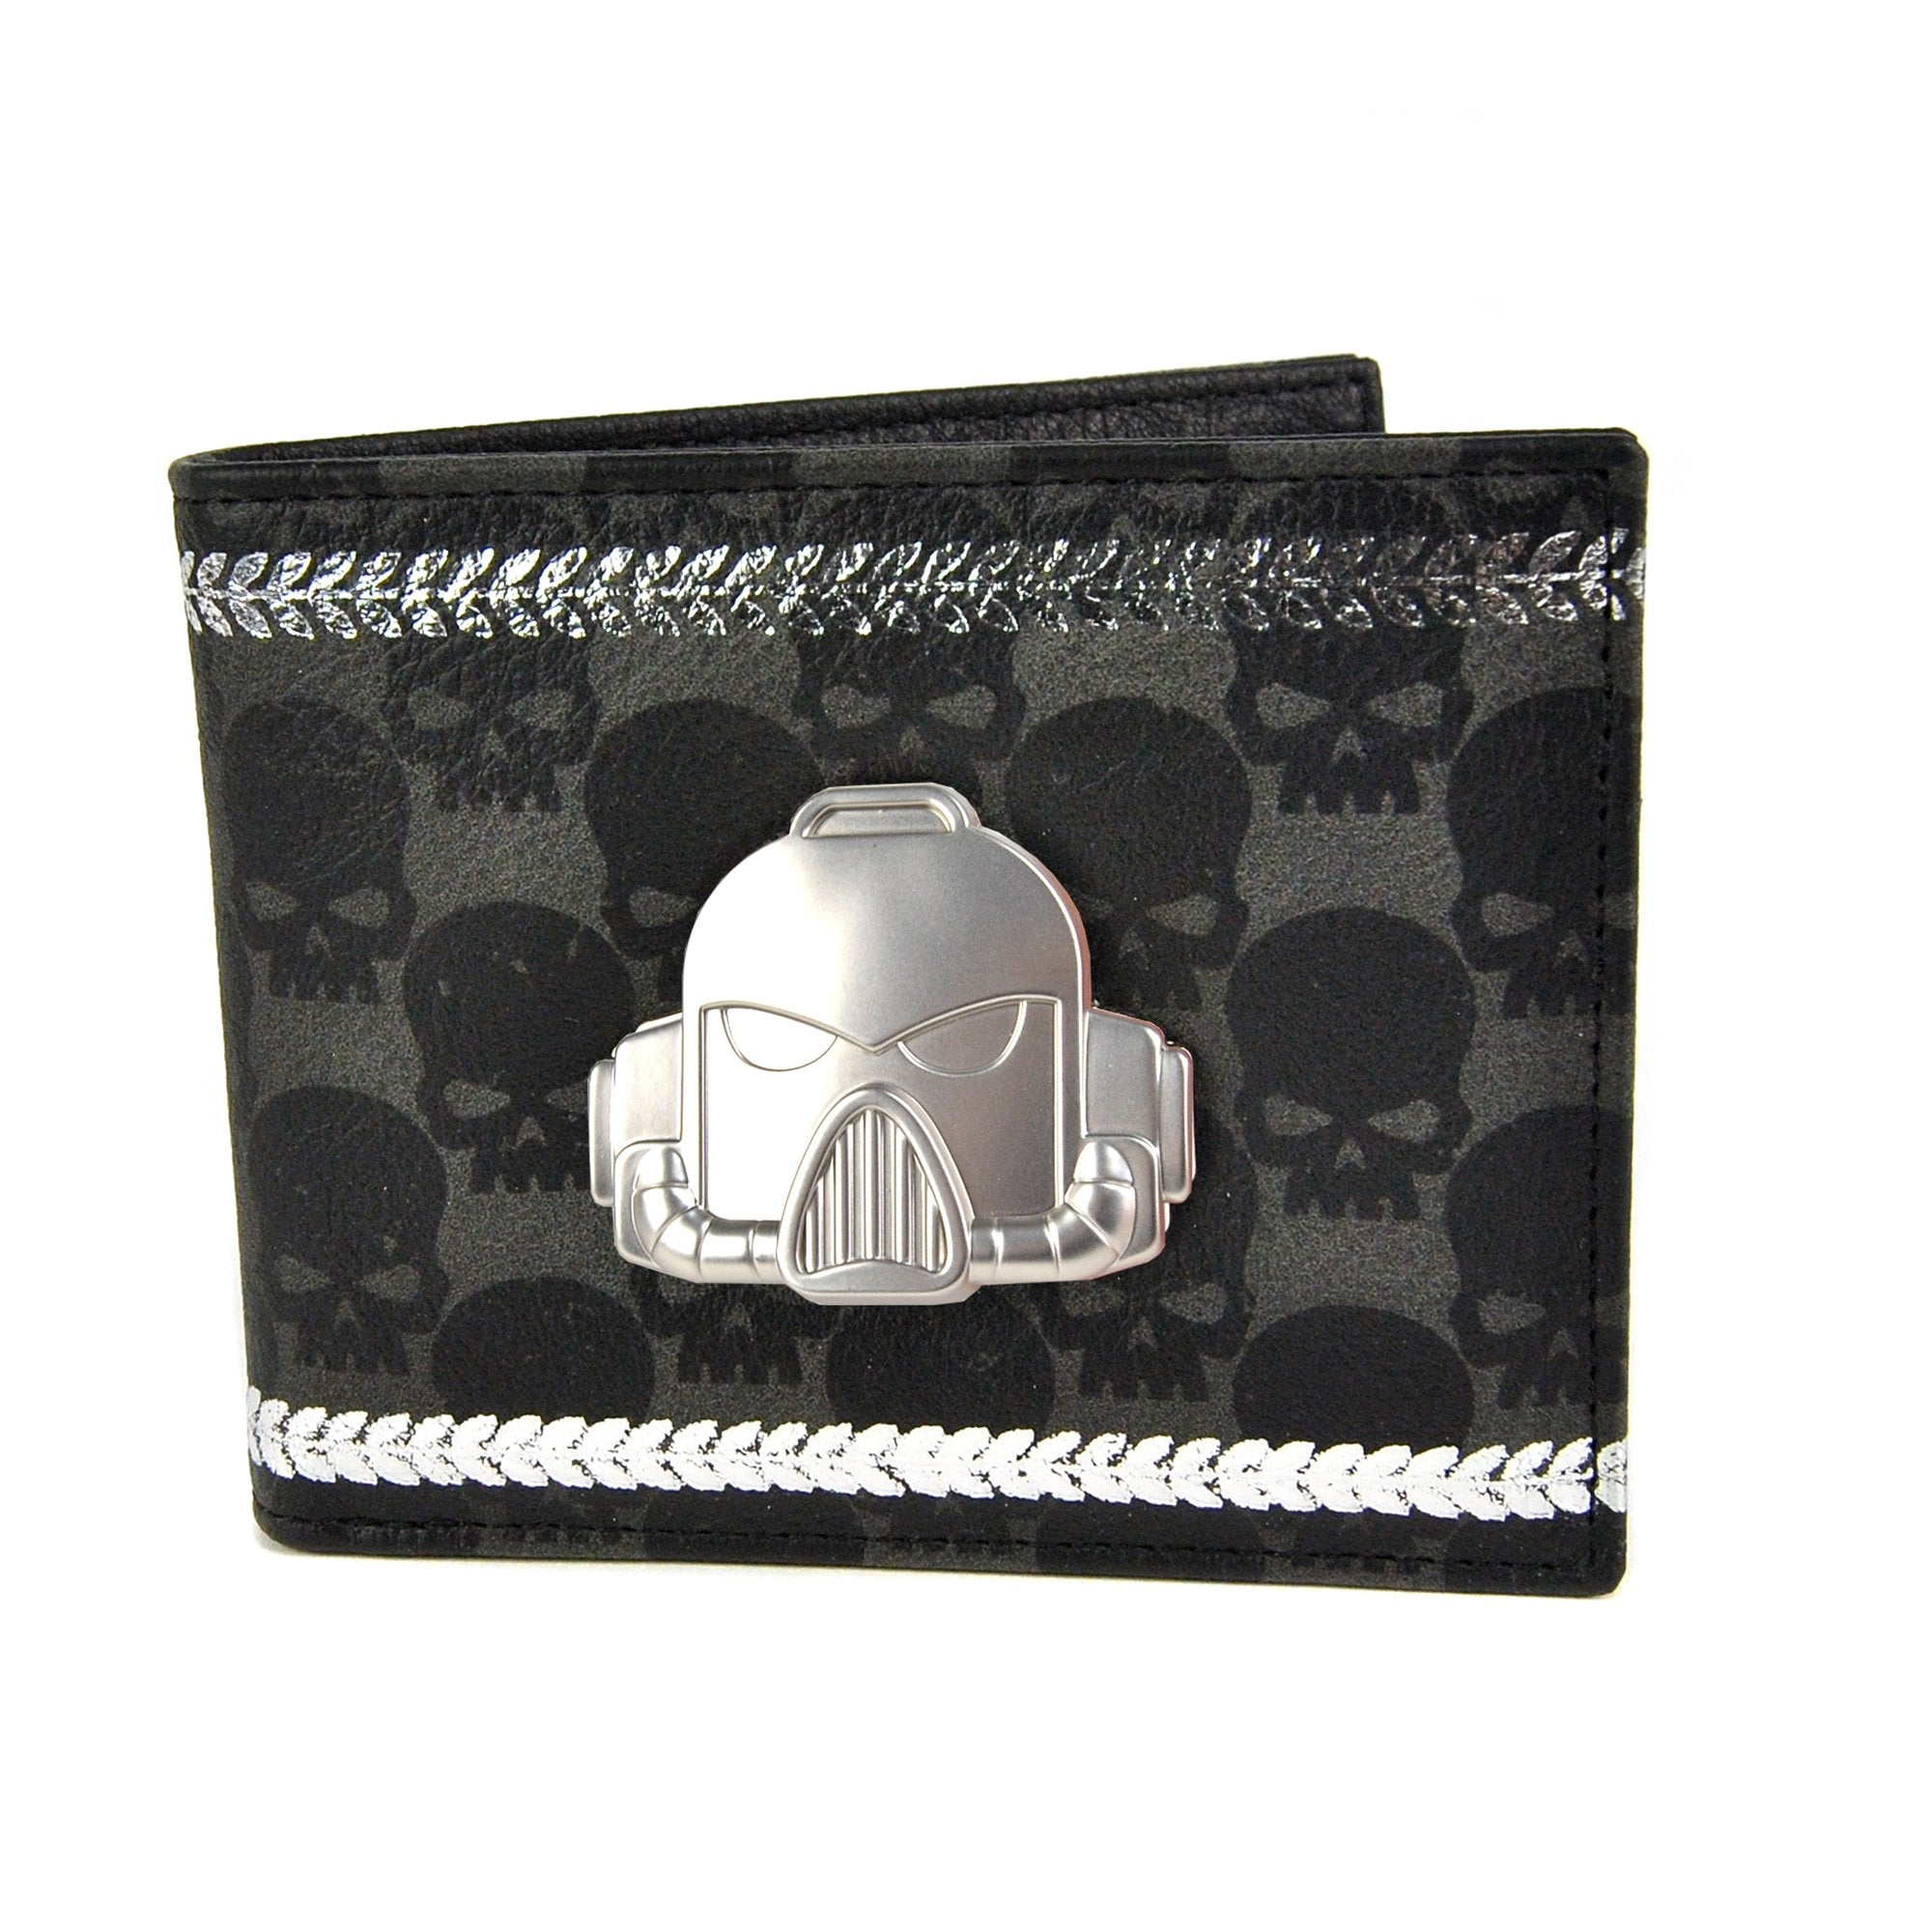 Warhammer 40,000 Wallet - Space Marine - Half Moon Bay US